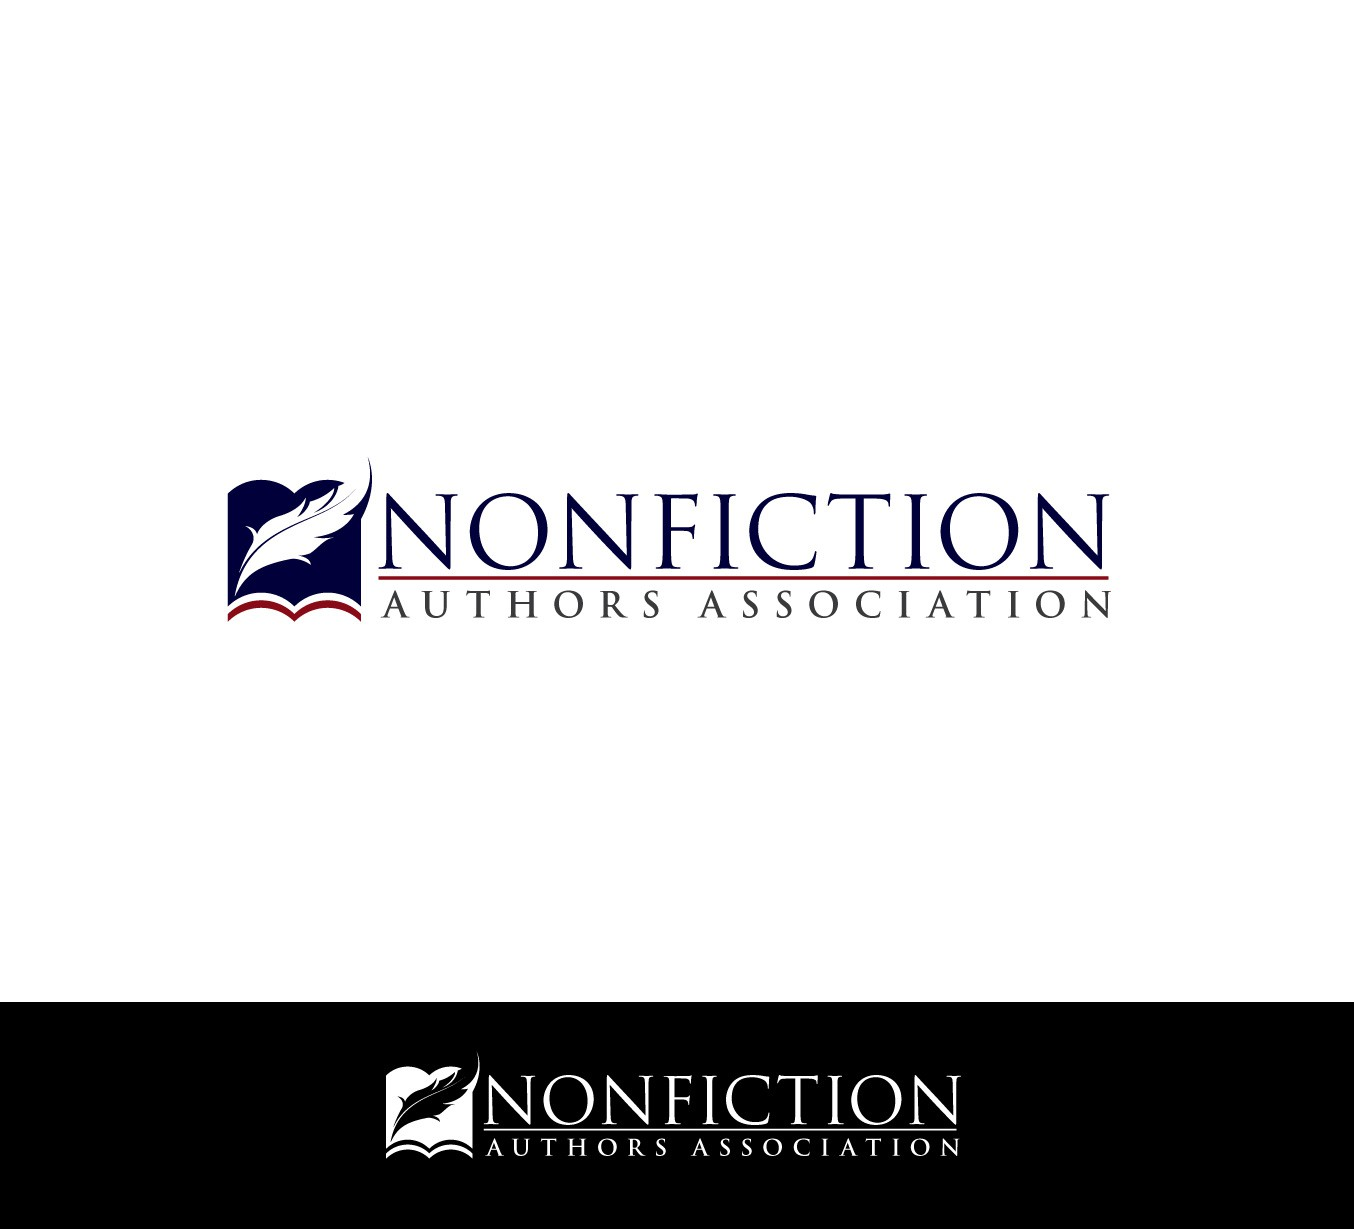 Help Nonfiction Authors Association with a new logo